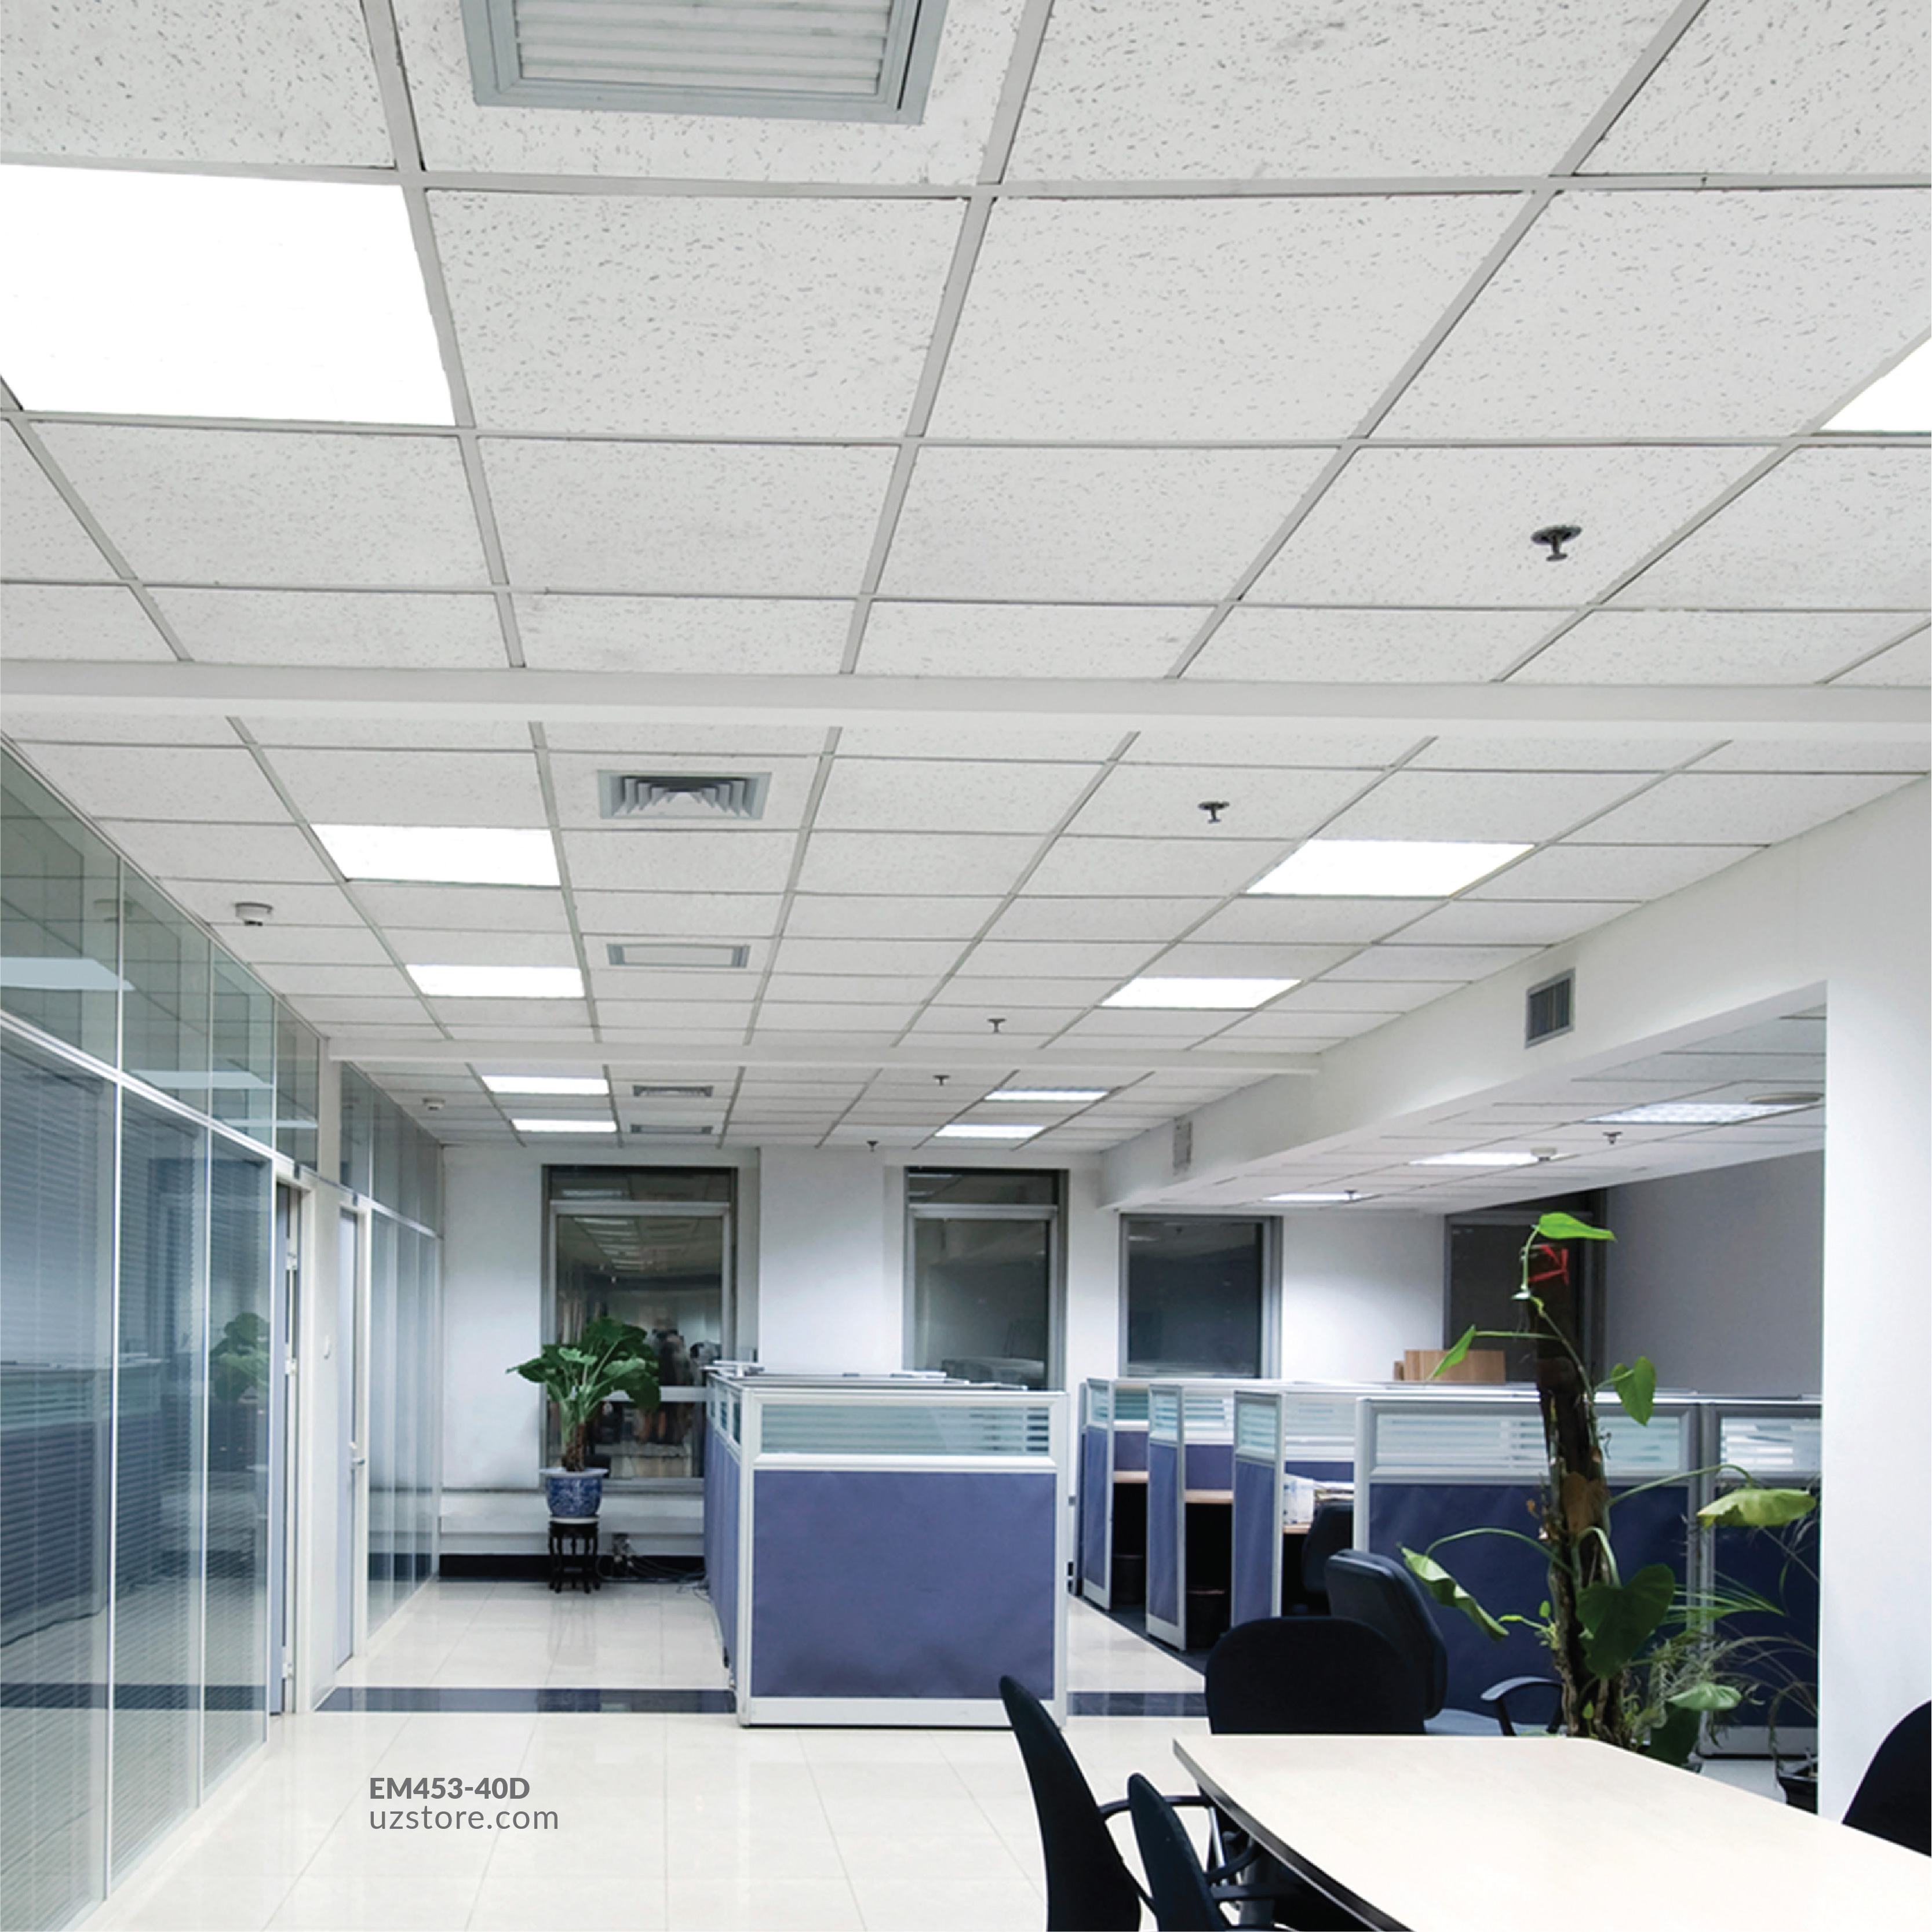 OSRAM 6500K (DAY LIGHT) 60x 60 LED PANEL, 40W, 4000LM 30000 HRS - NON DIMMABLE - IP20